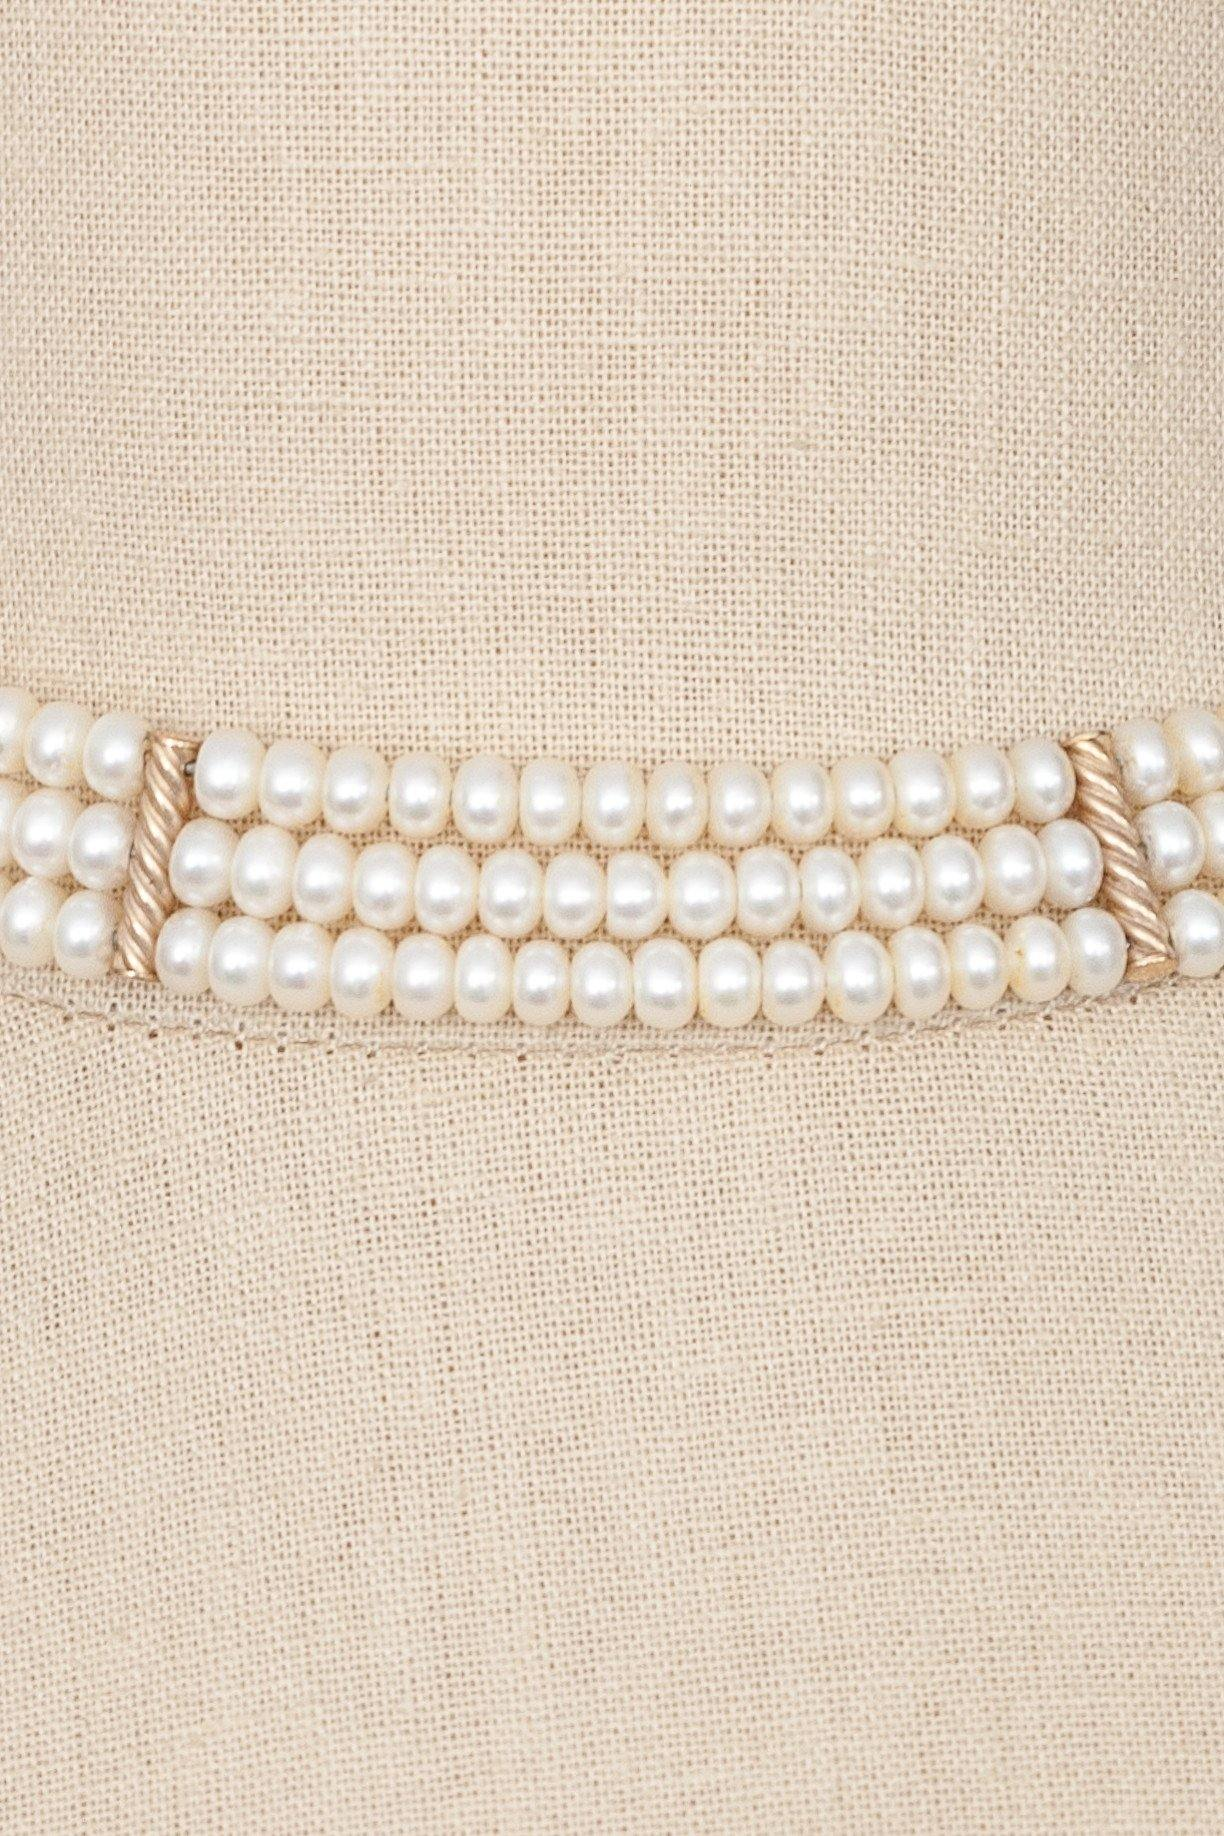 80's__Vintage__Pearl Choker Necklace